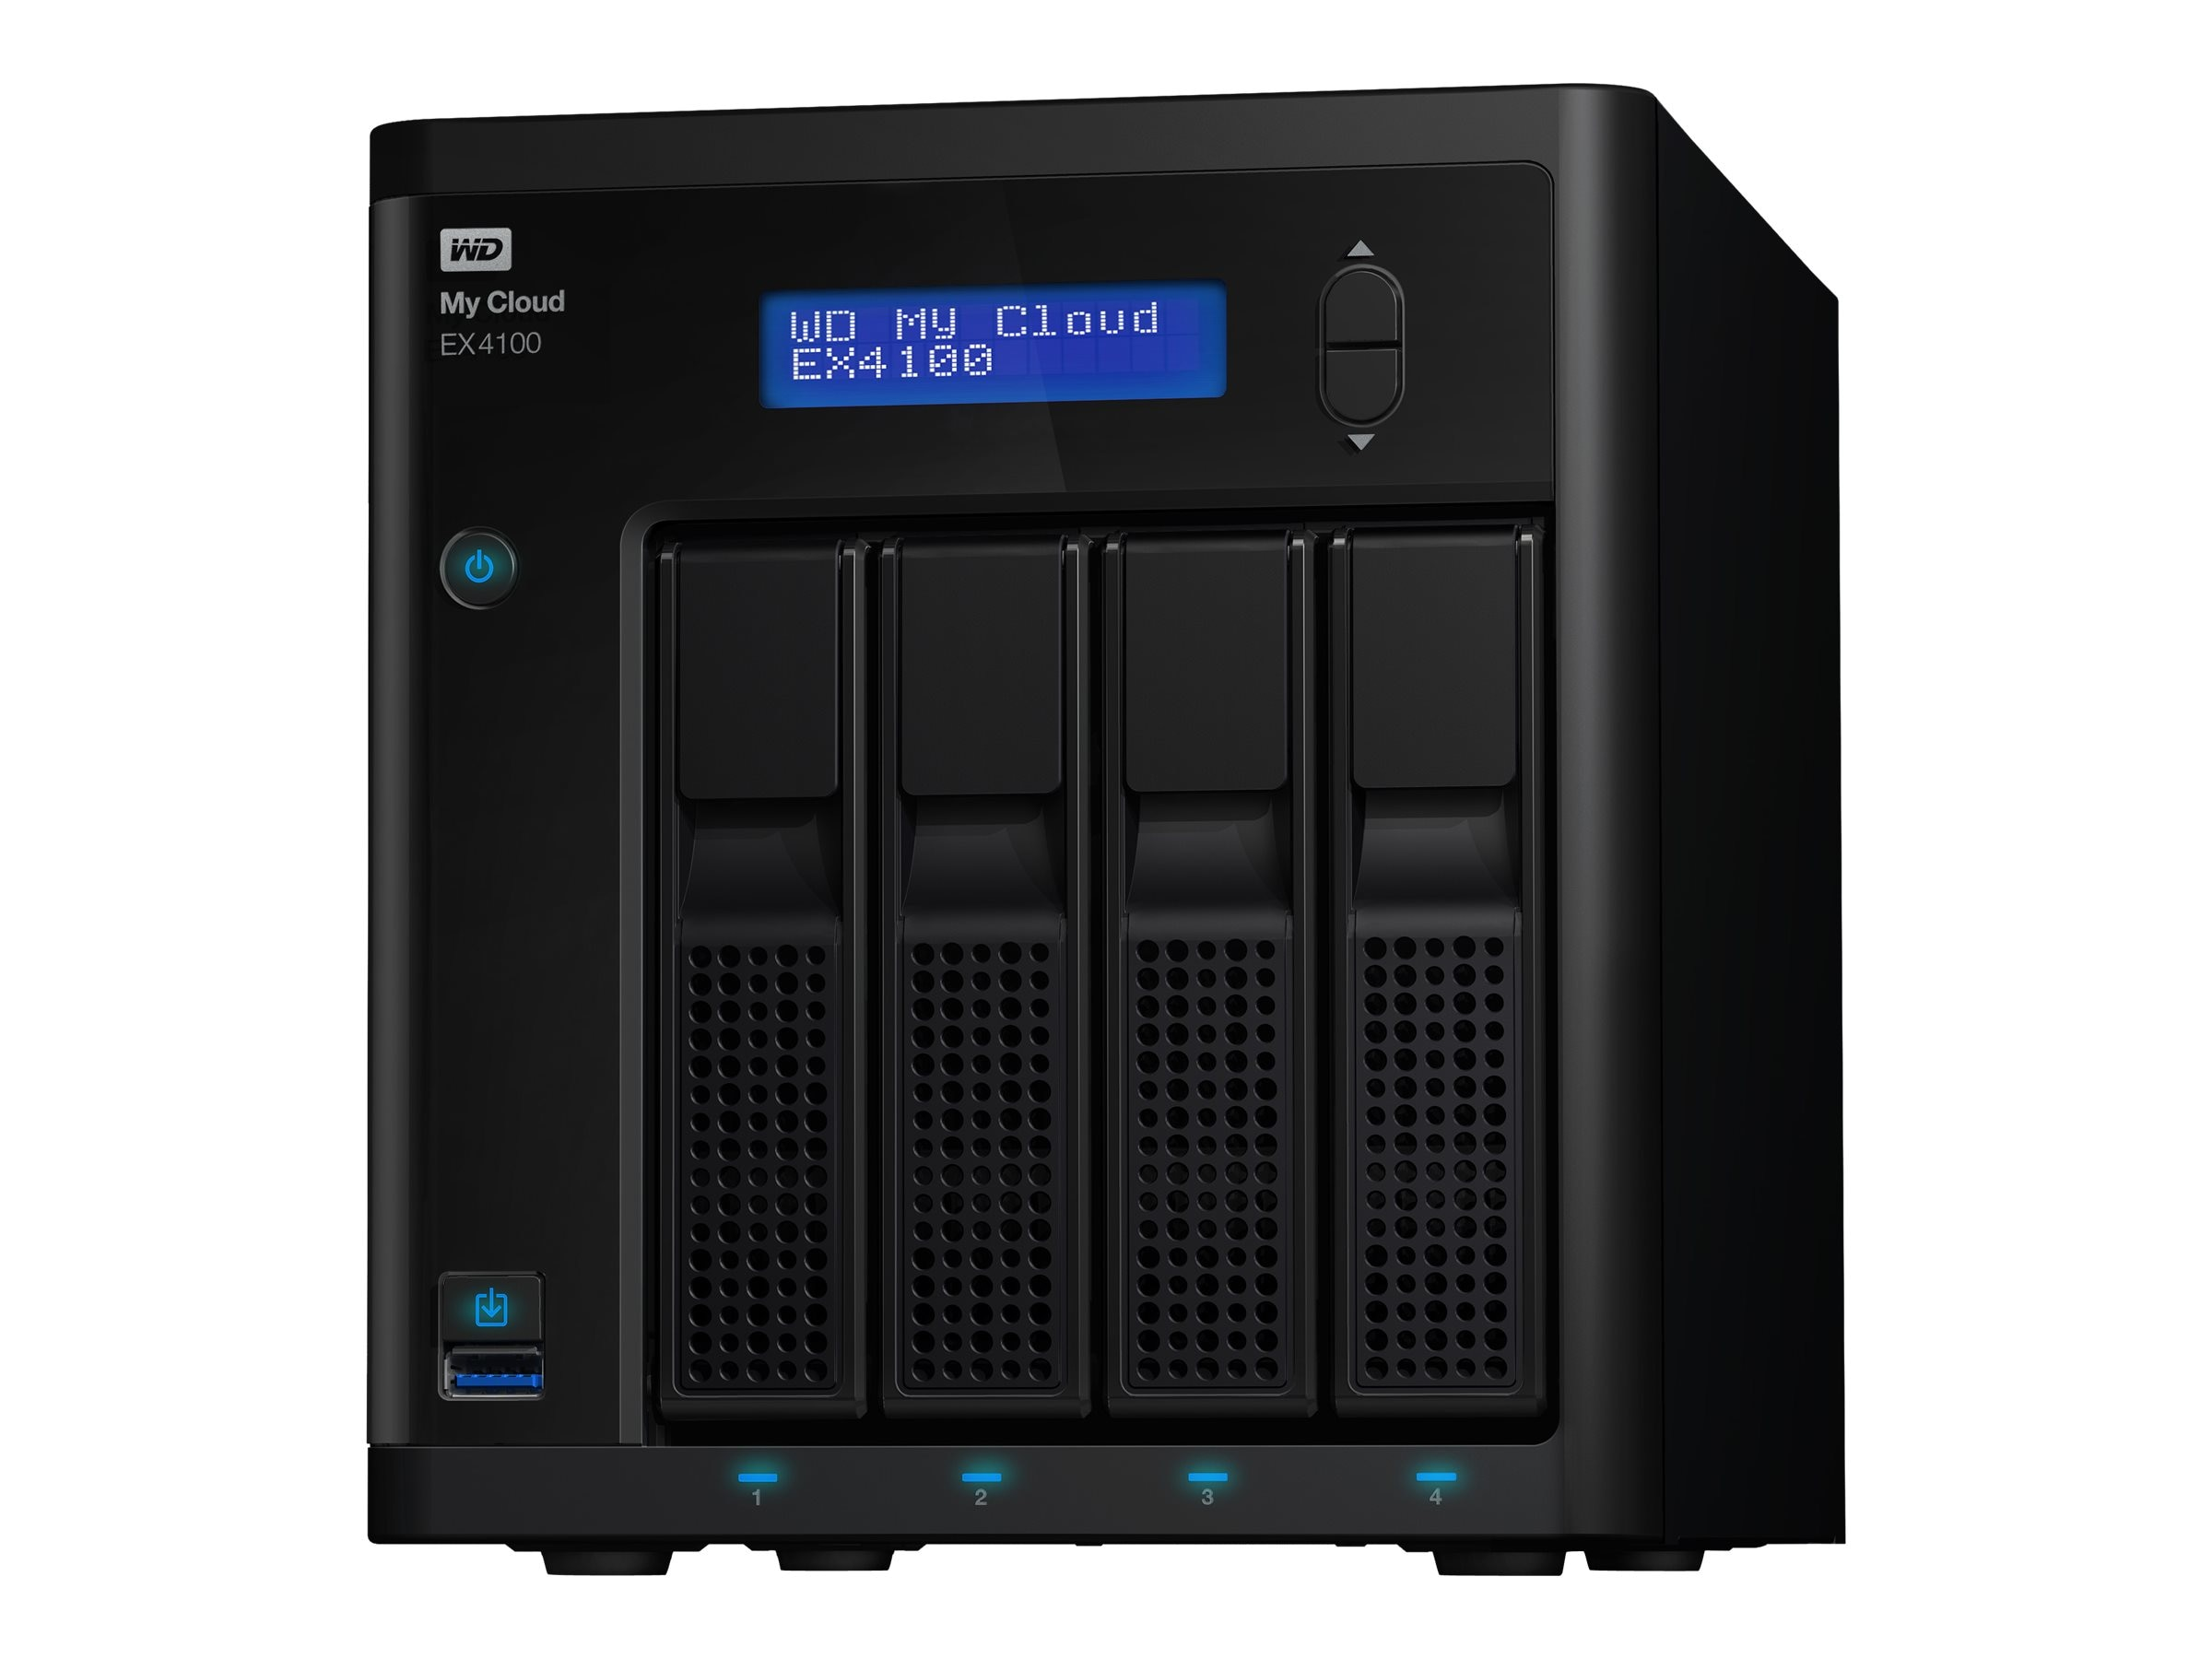 WD 16TB My Cloud EX4100 Network Attached Storage, WDBWZE0160KBK-NESN, 18442851, Network Attached Storage